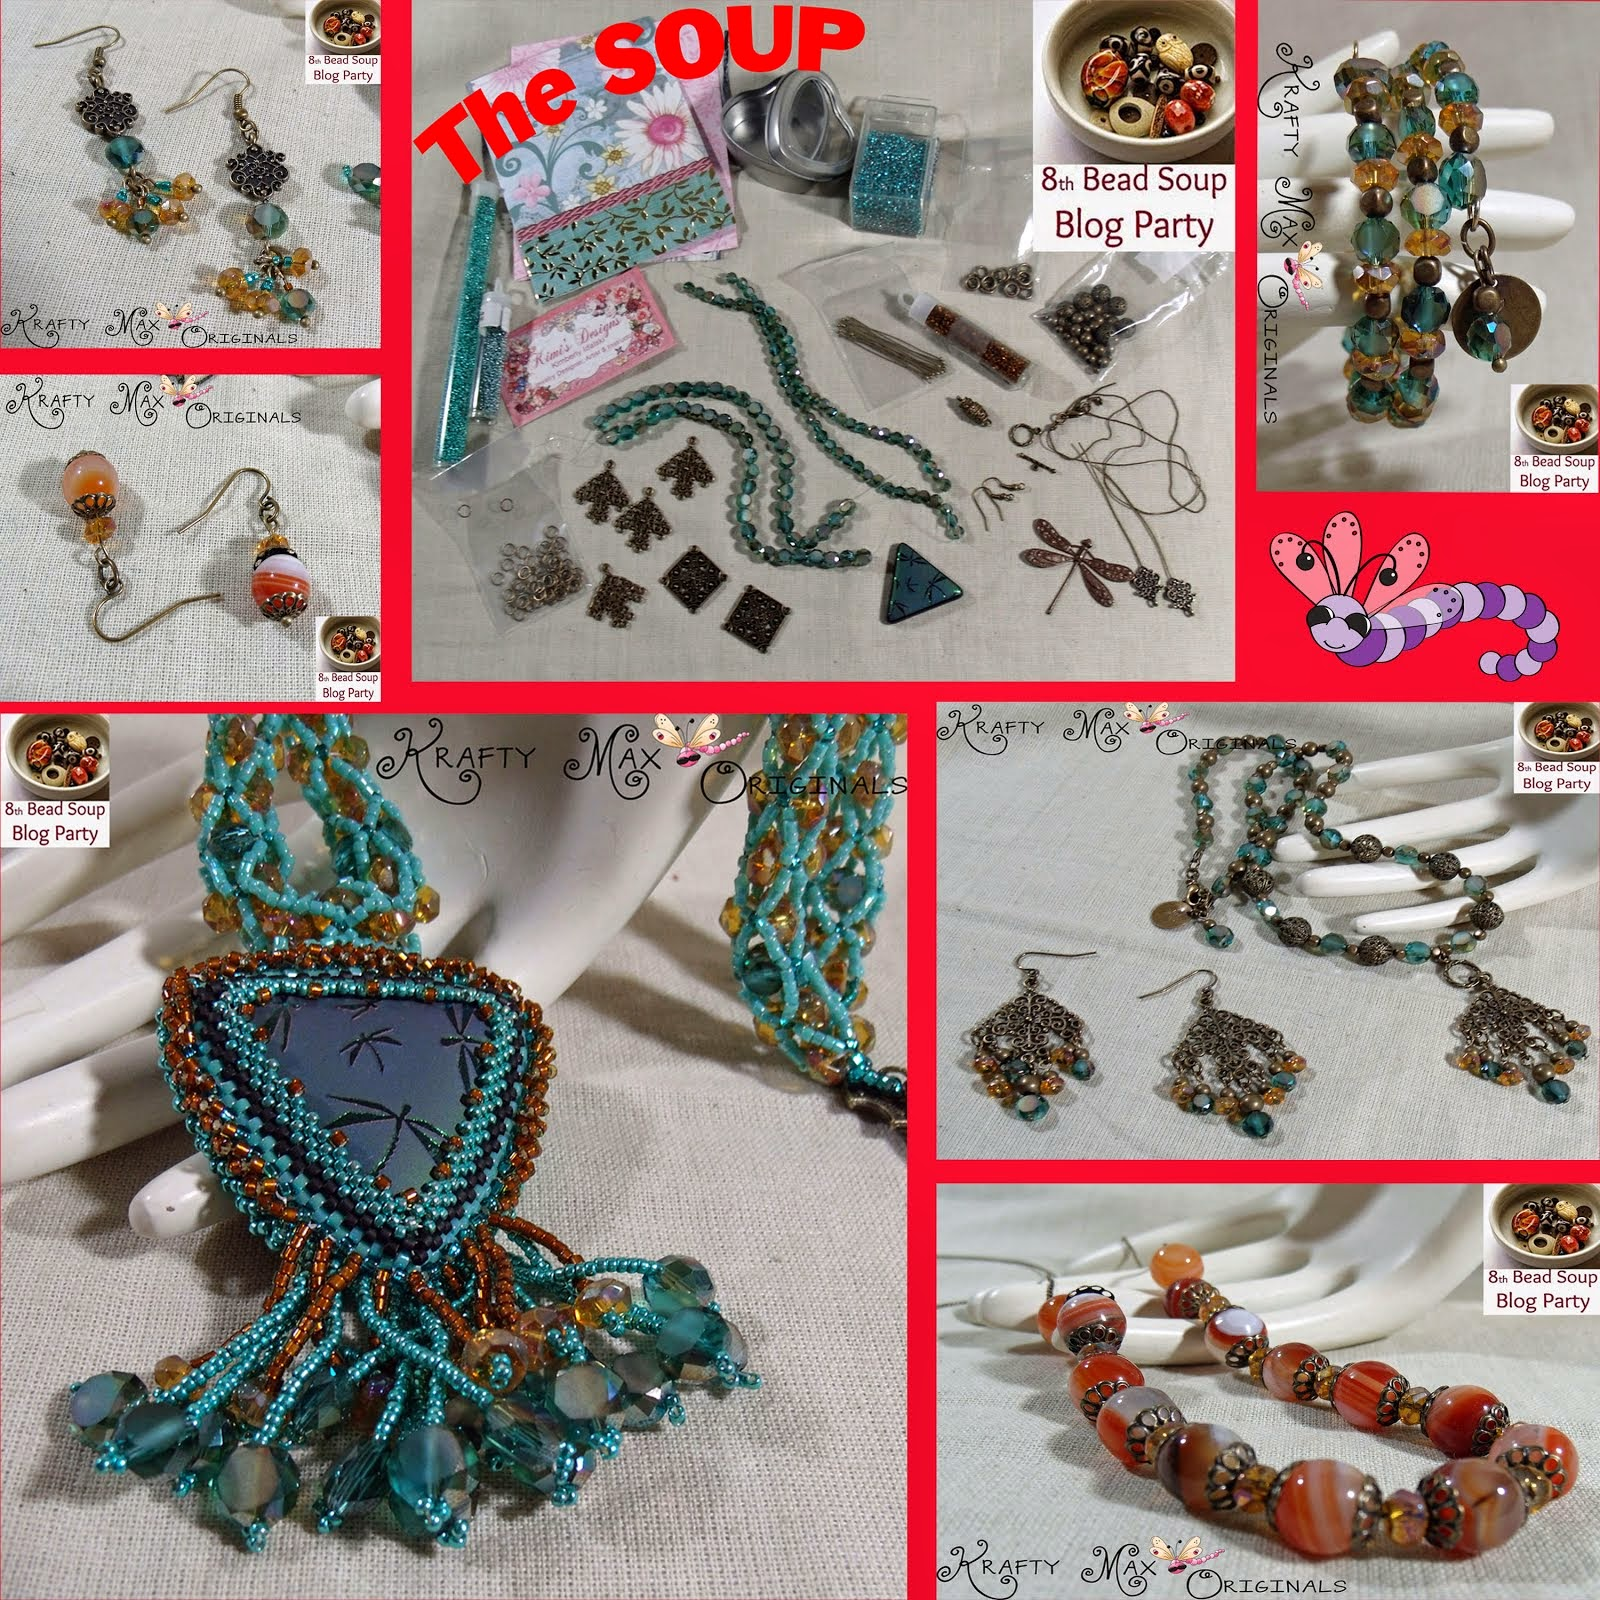 8th Bead Soup Blog Party